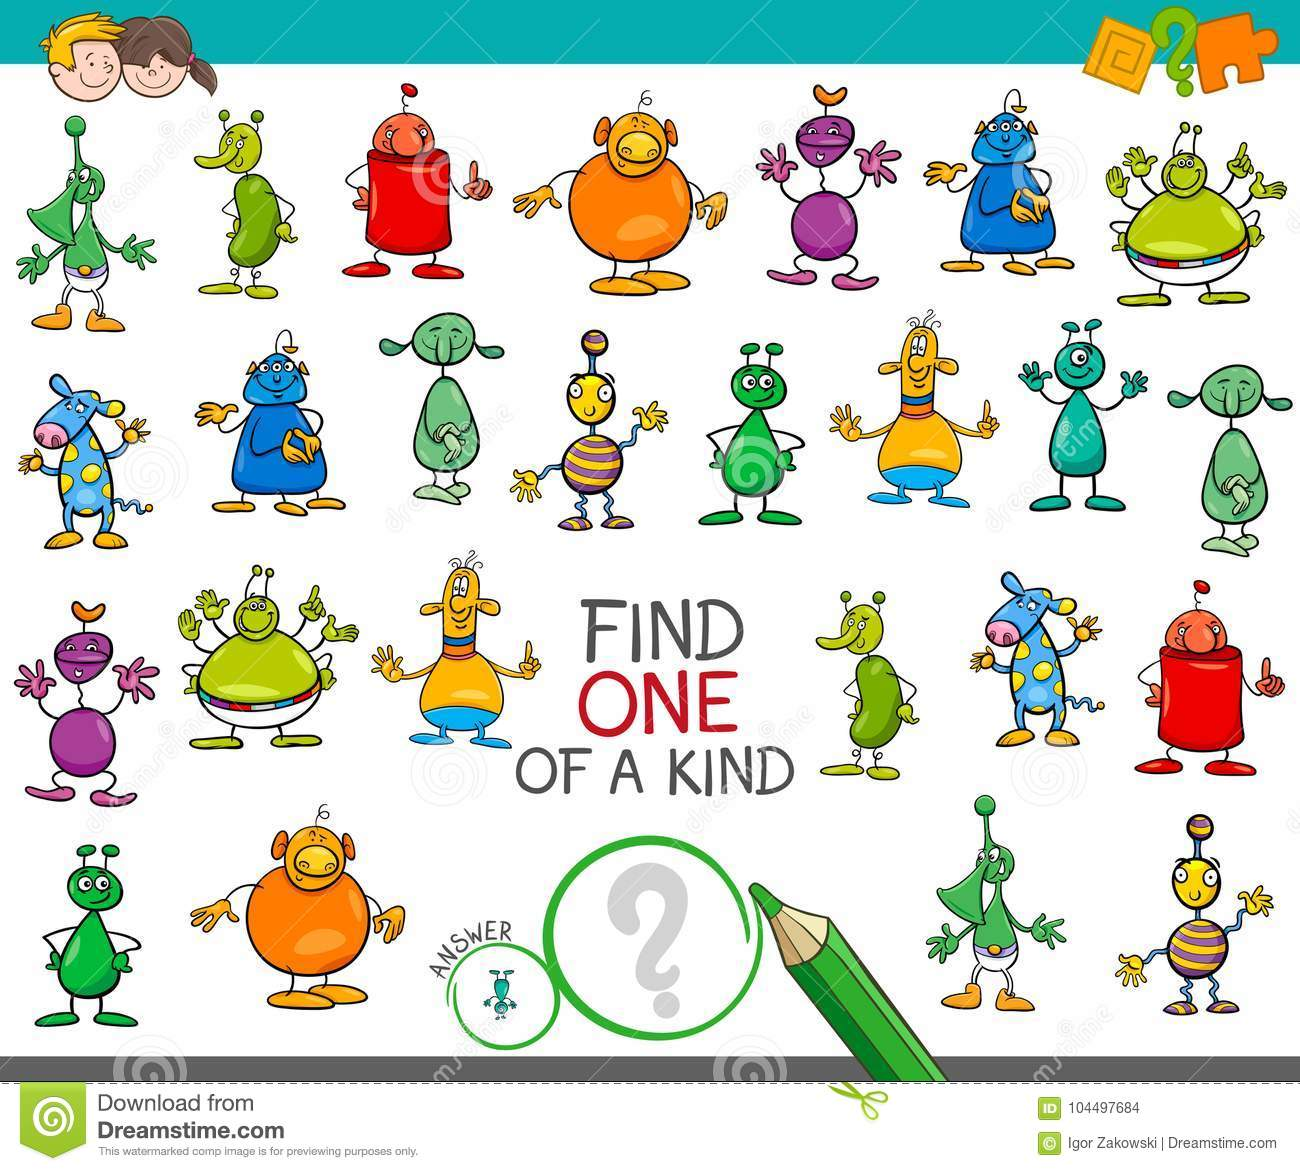 Find One Of A Kind Game With Aliens Characters Stock Vector